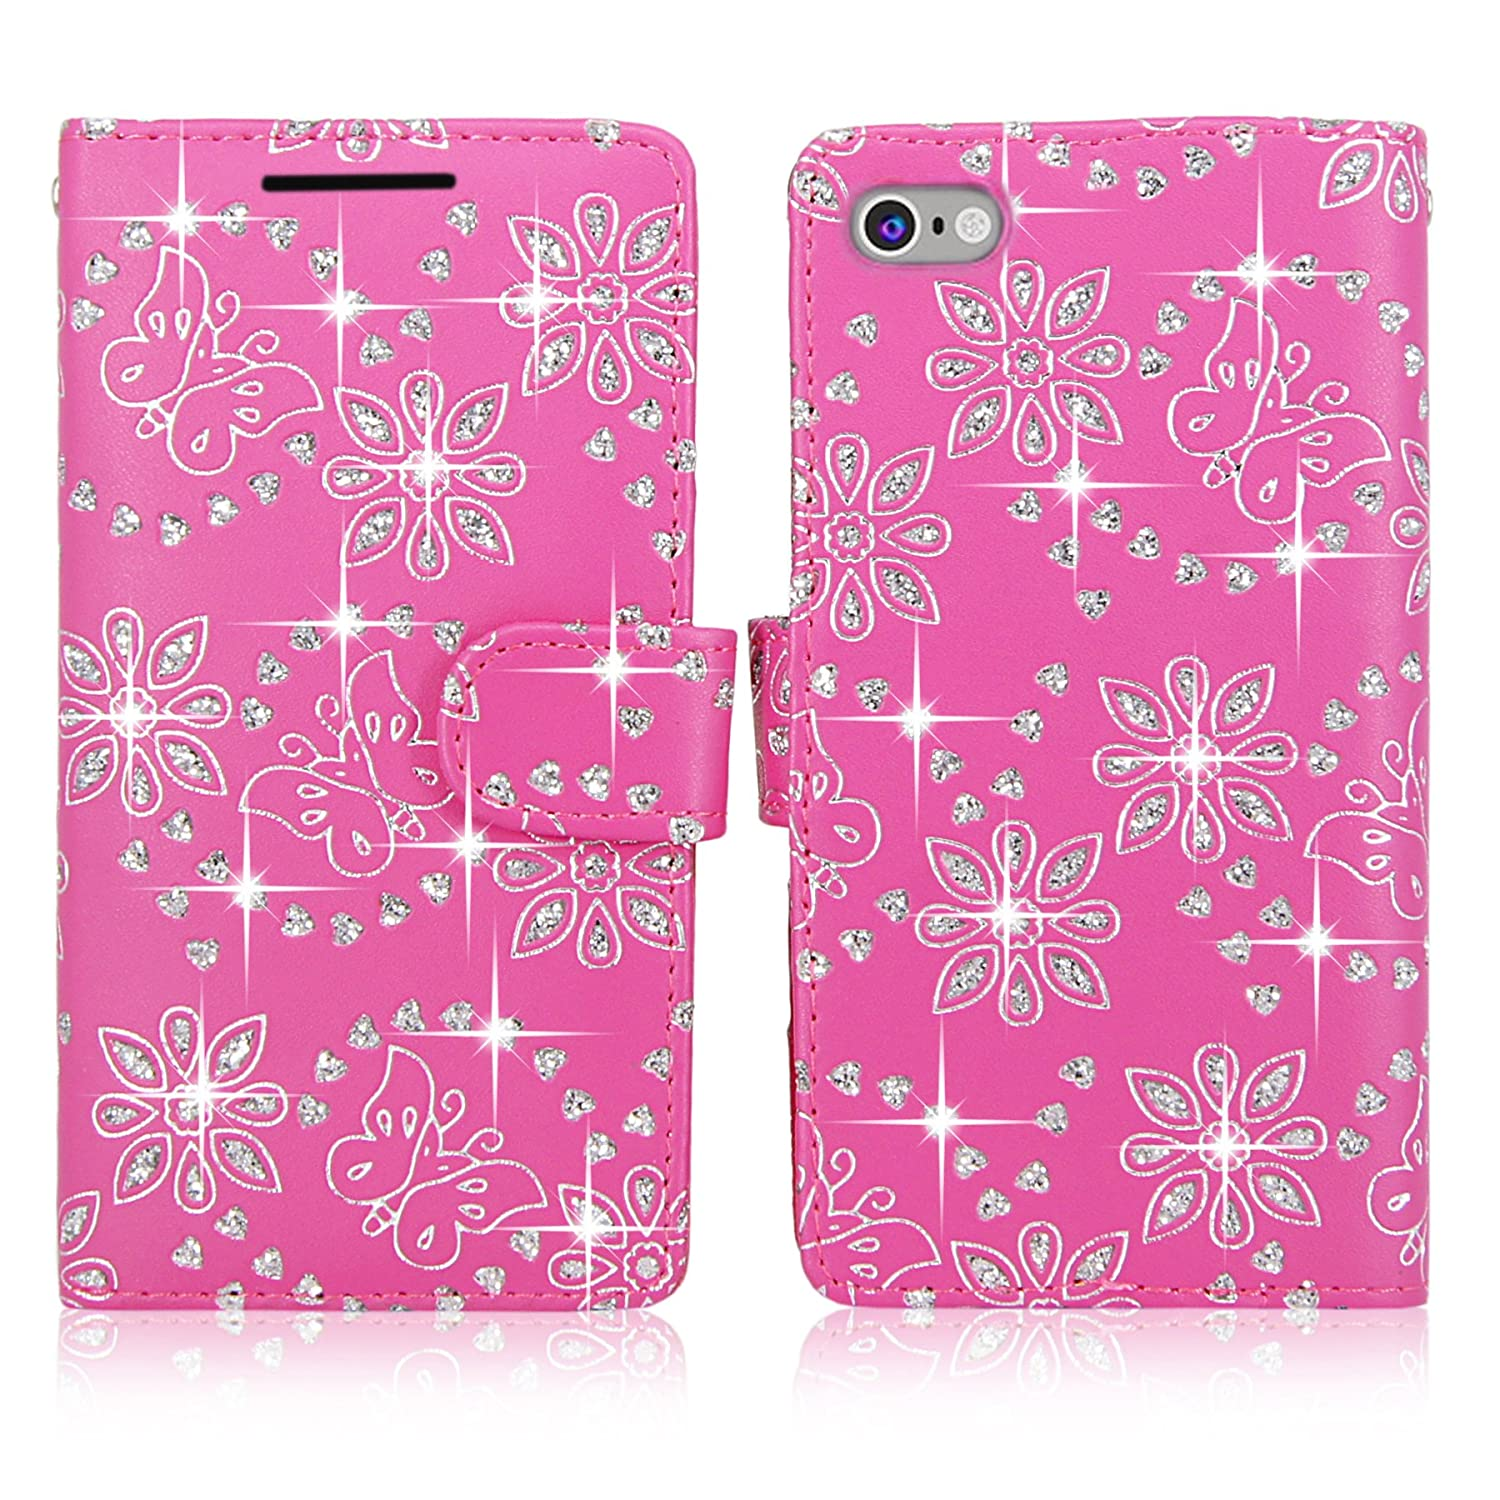 Cellularvilla Leather Pockets Detachable Glitter Image 1